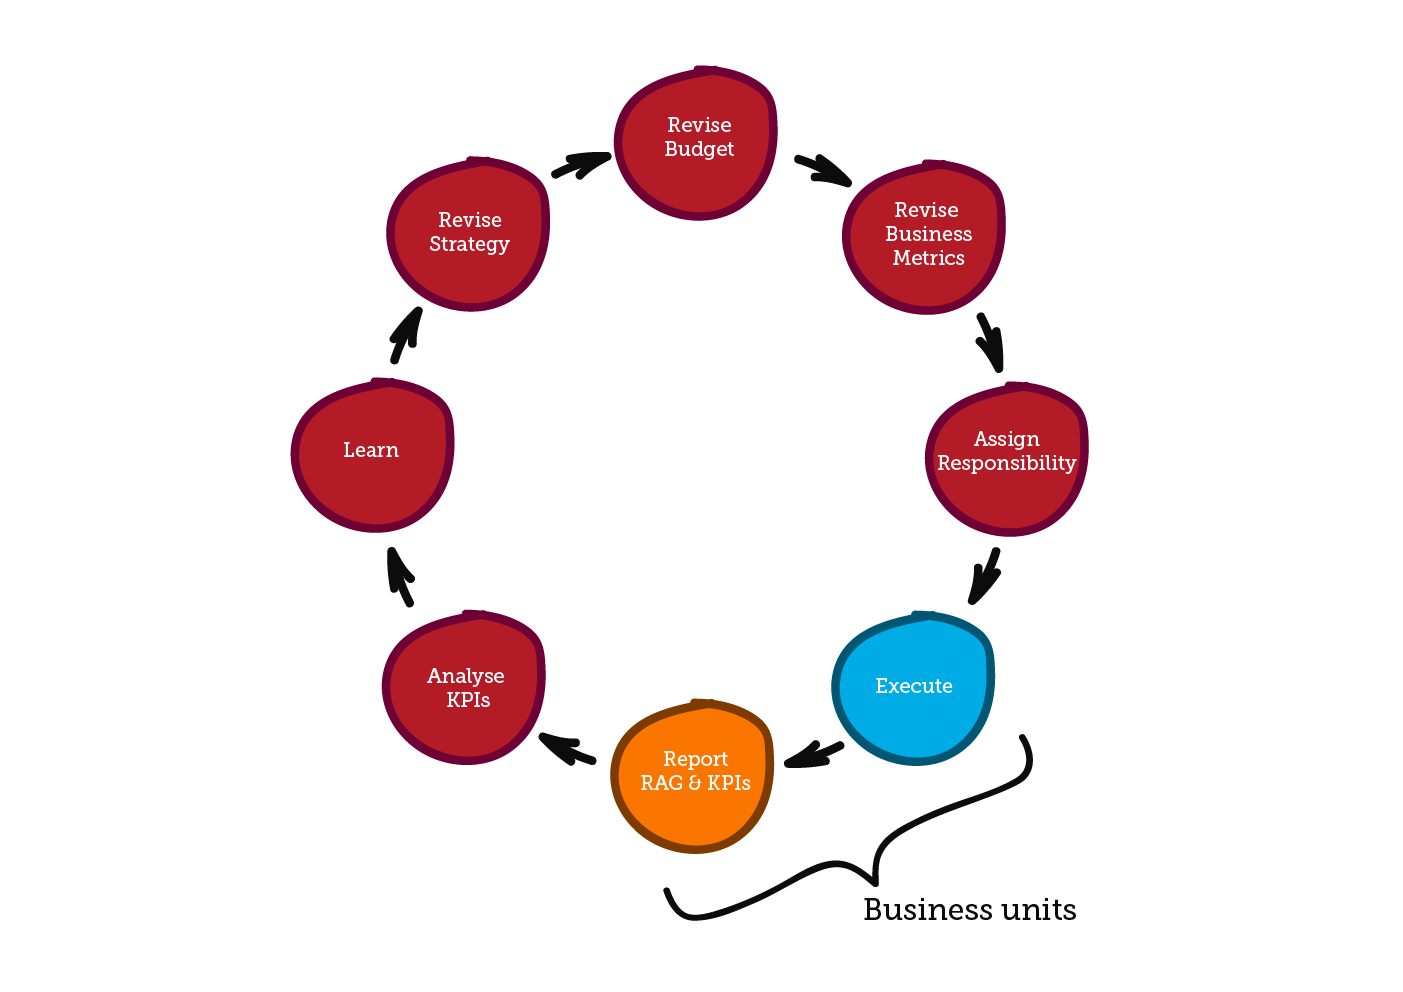 02. Board Level Governance Cycle